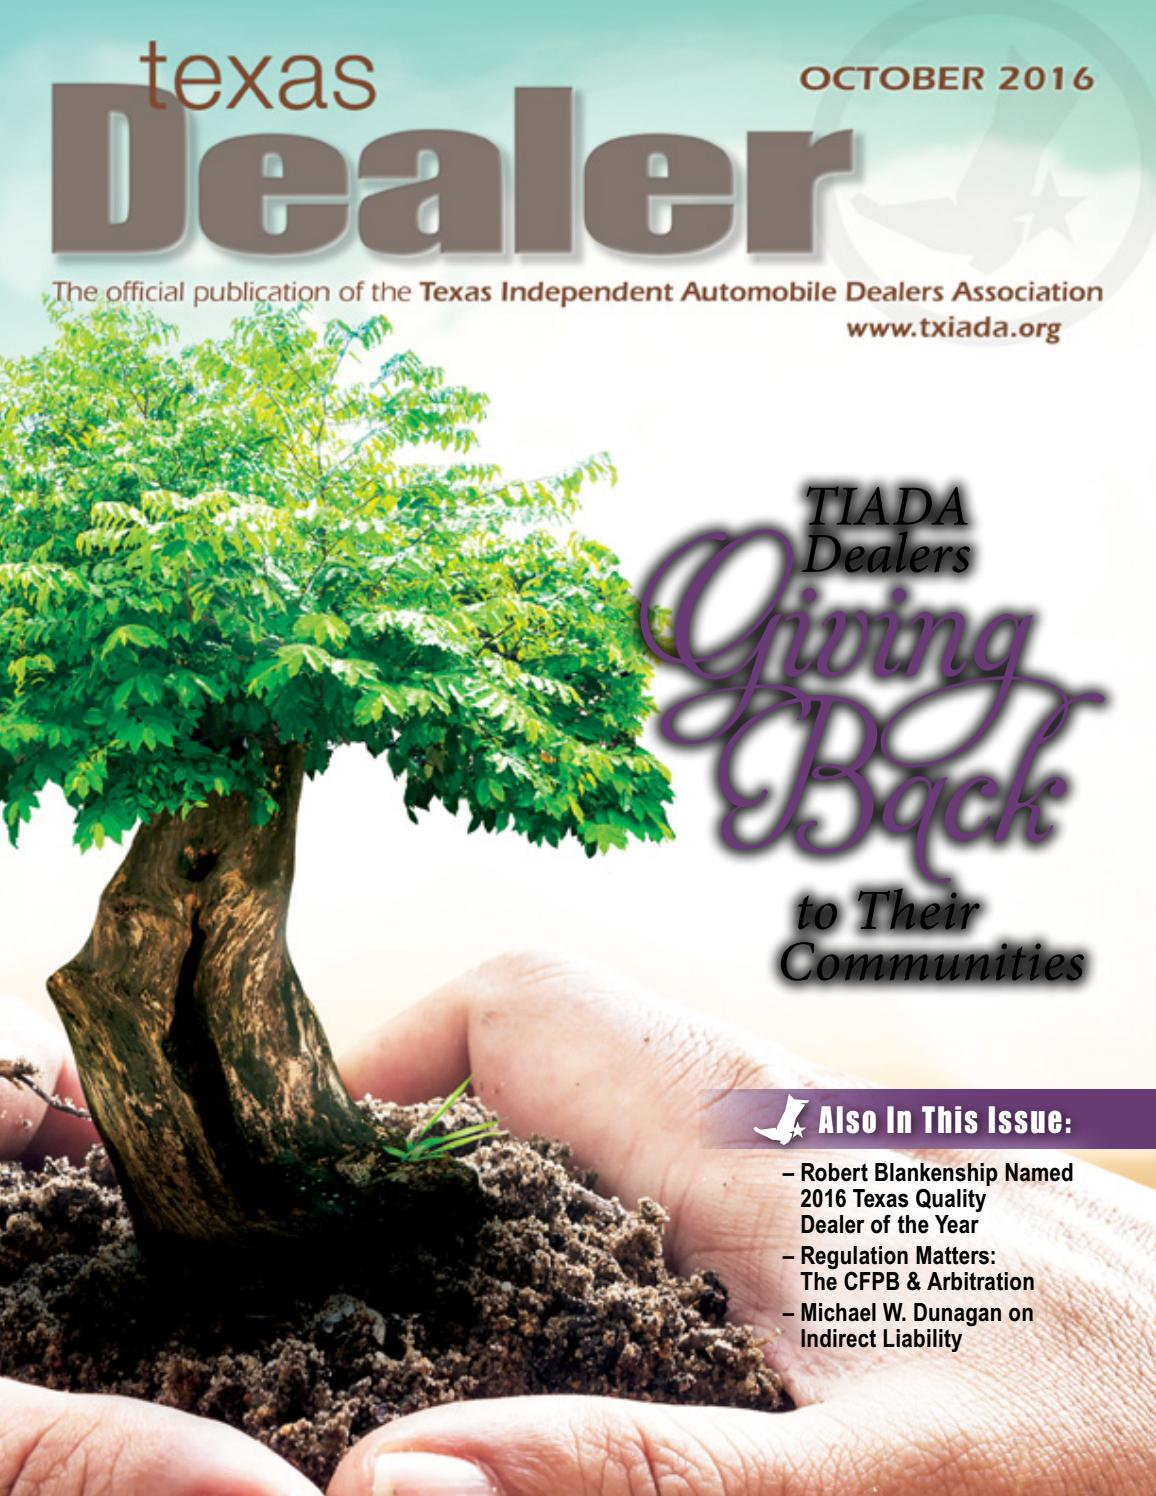 Texas Dealer October 2016 By Texas Independent Auto